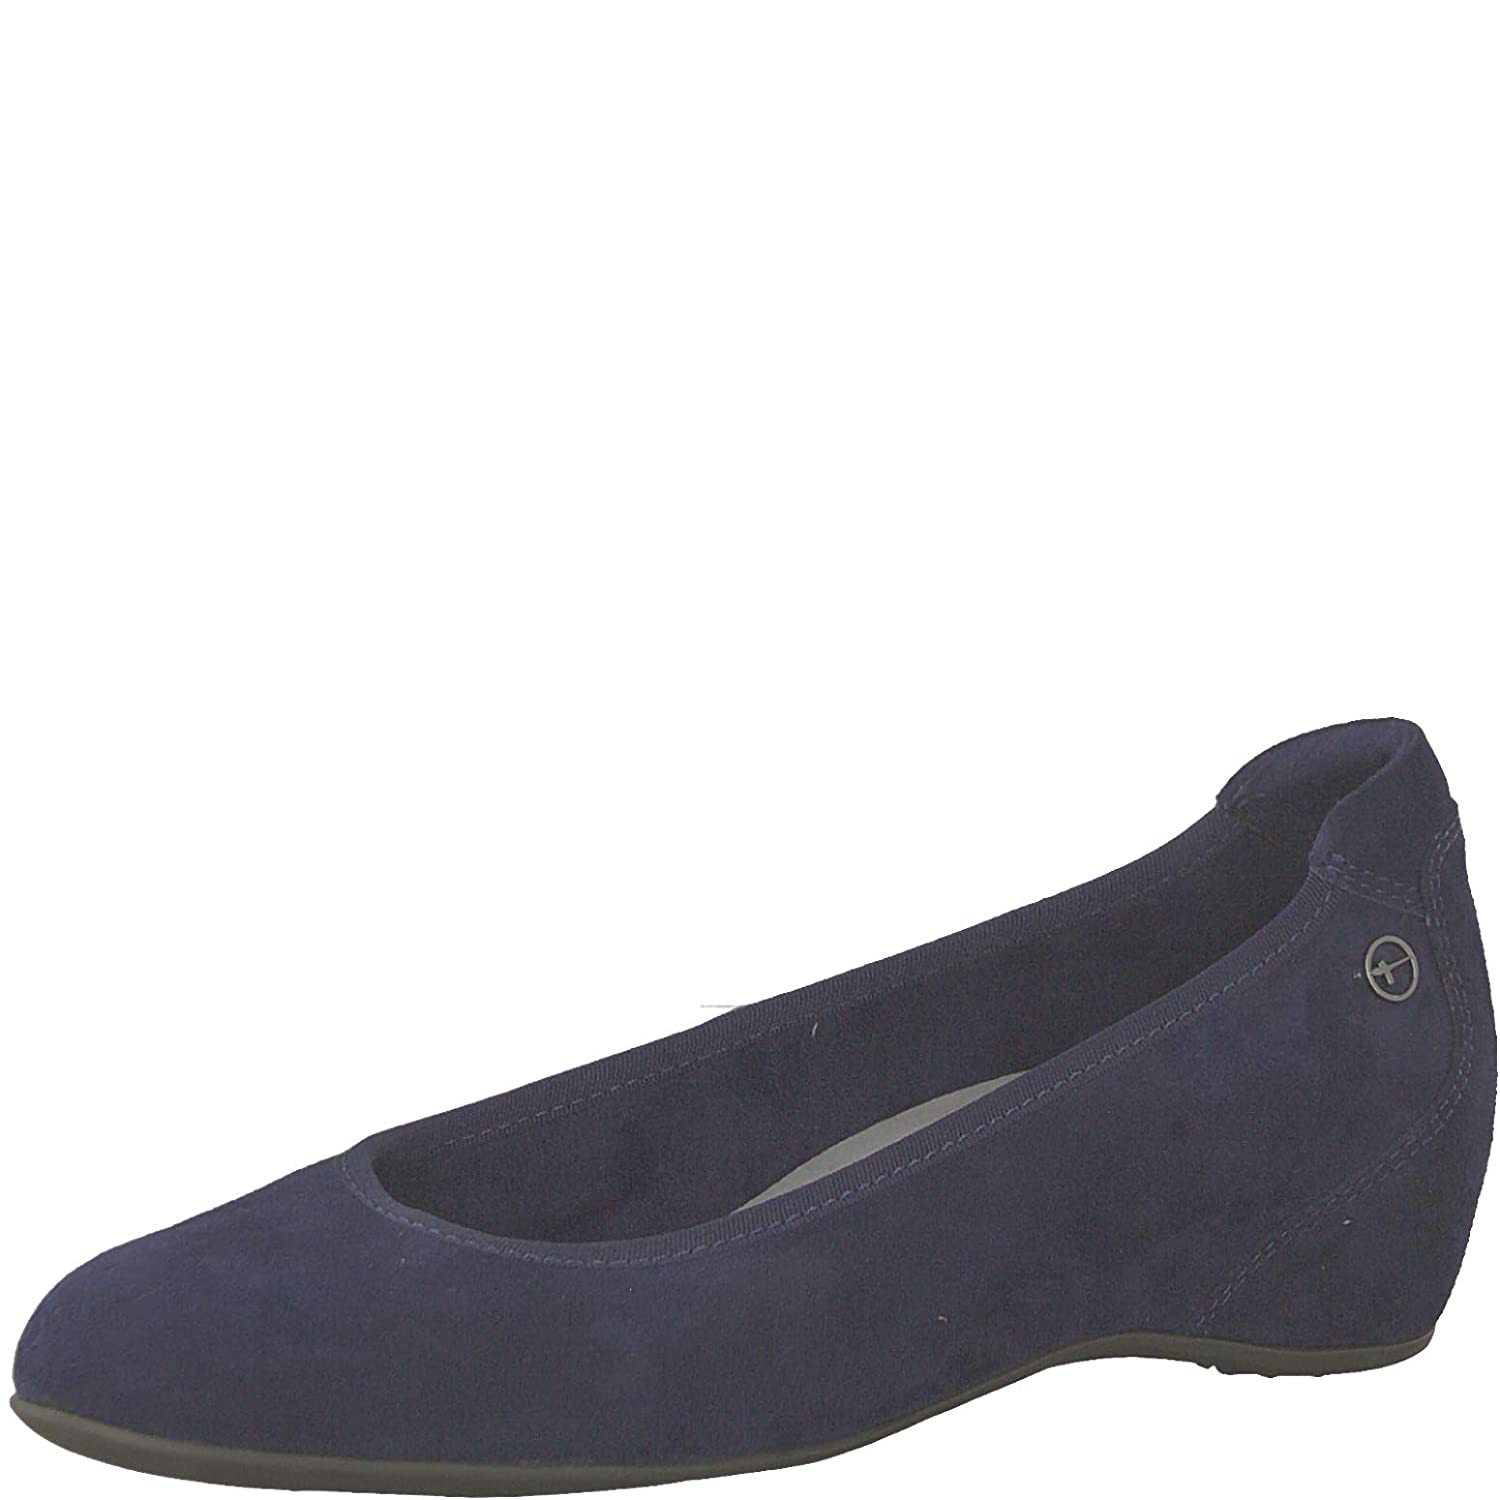 Navy Suede Tamaris Damen 22421 Pumps